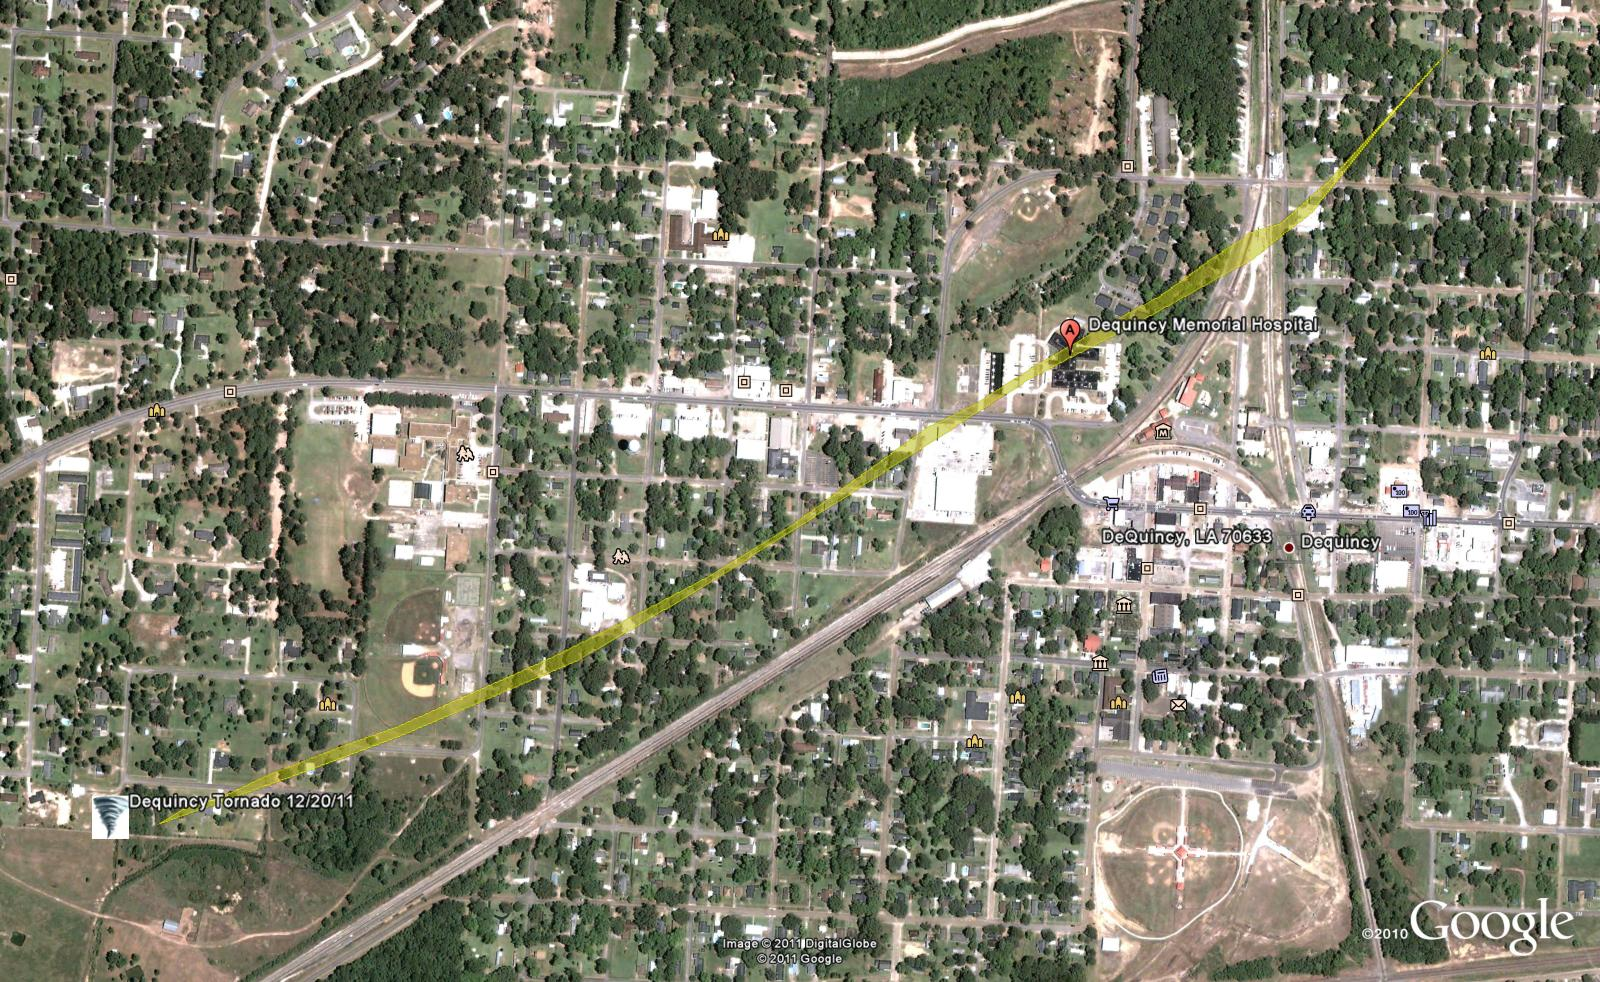 Map of DeQuincy tornado - click for larger image